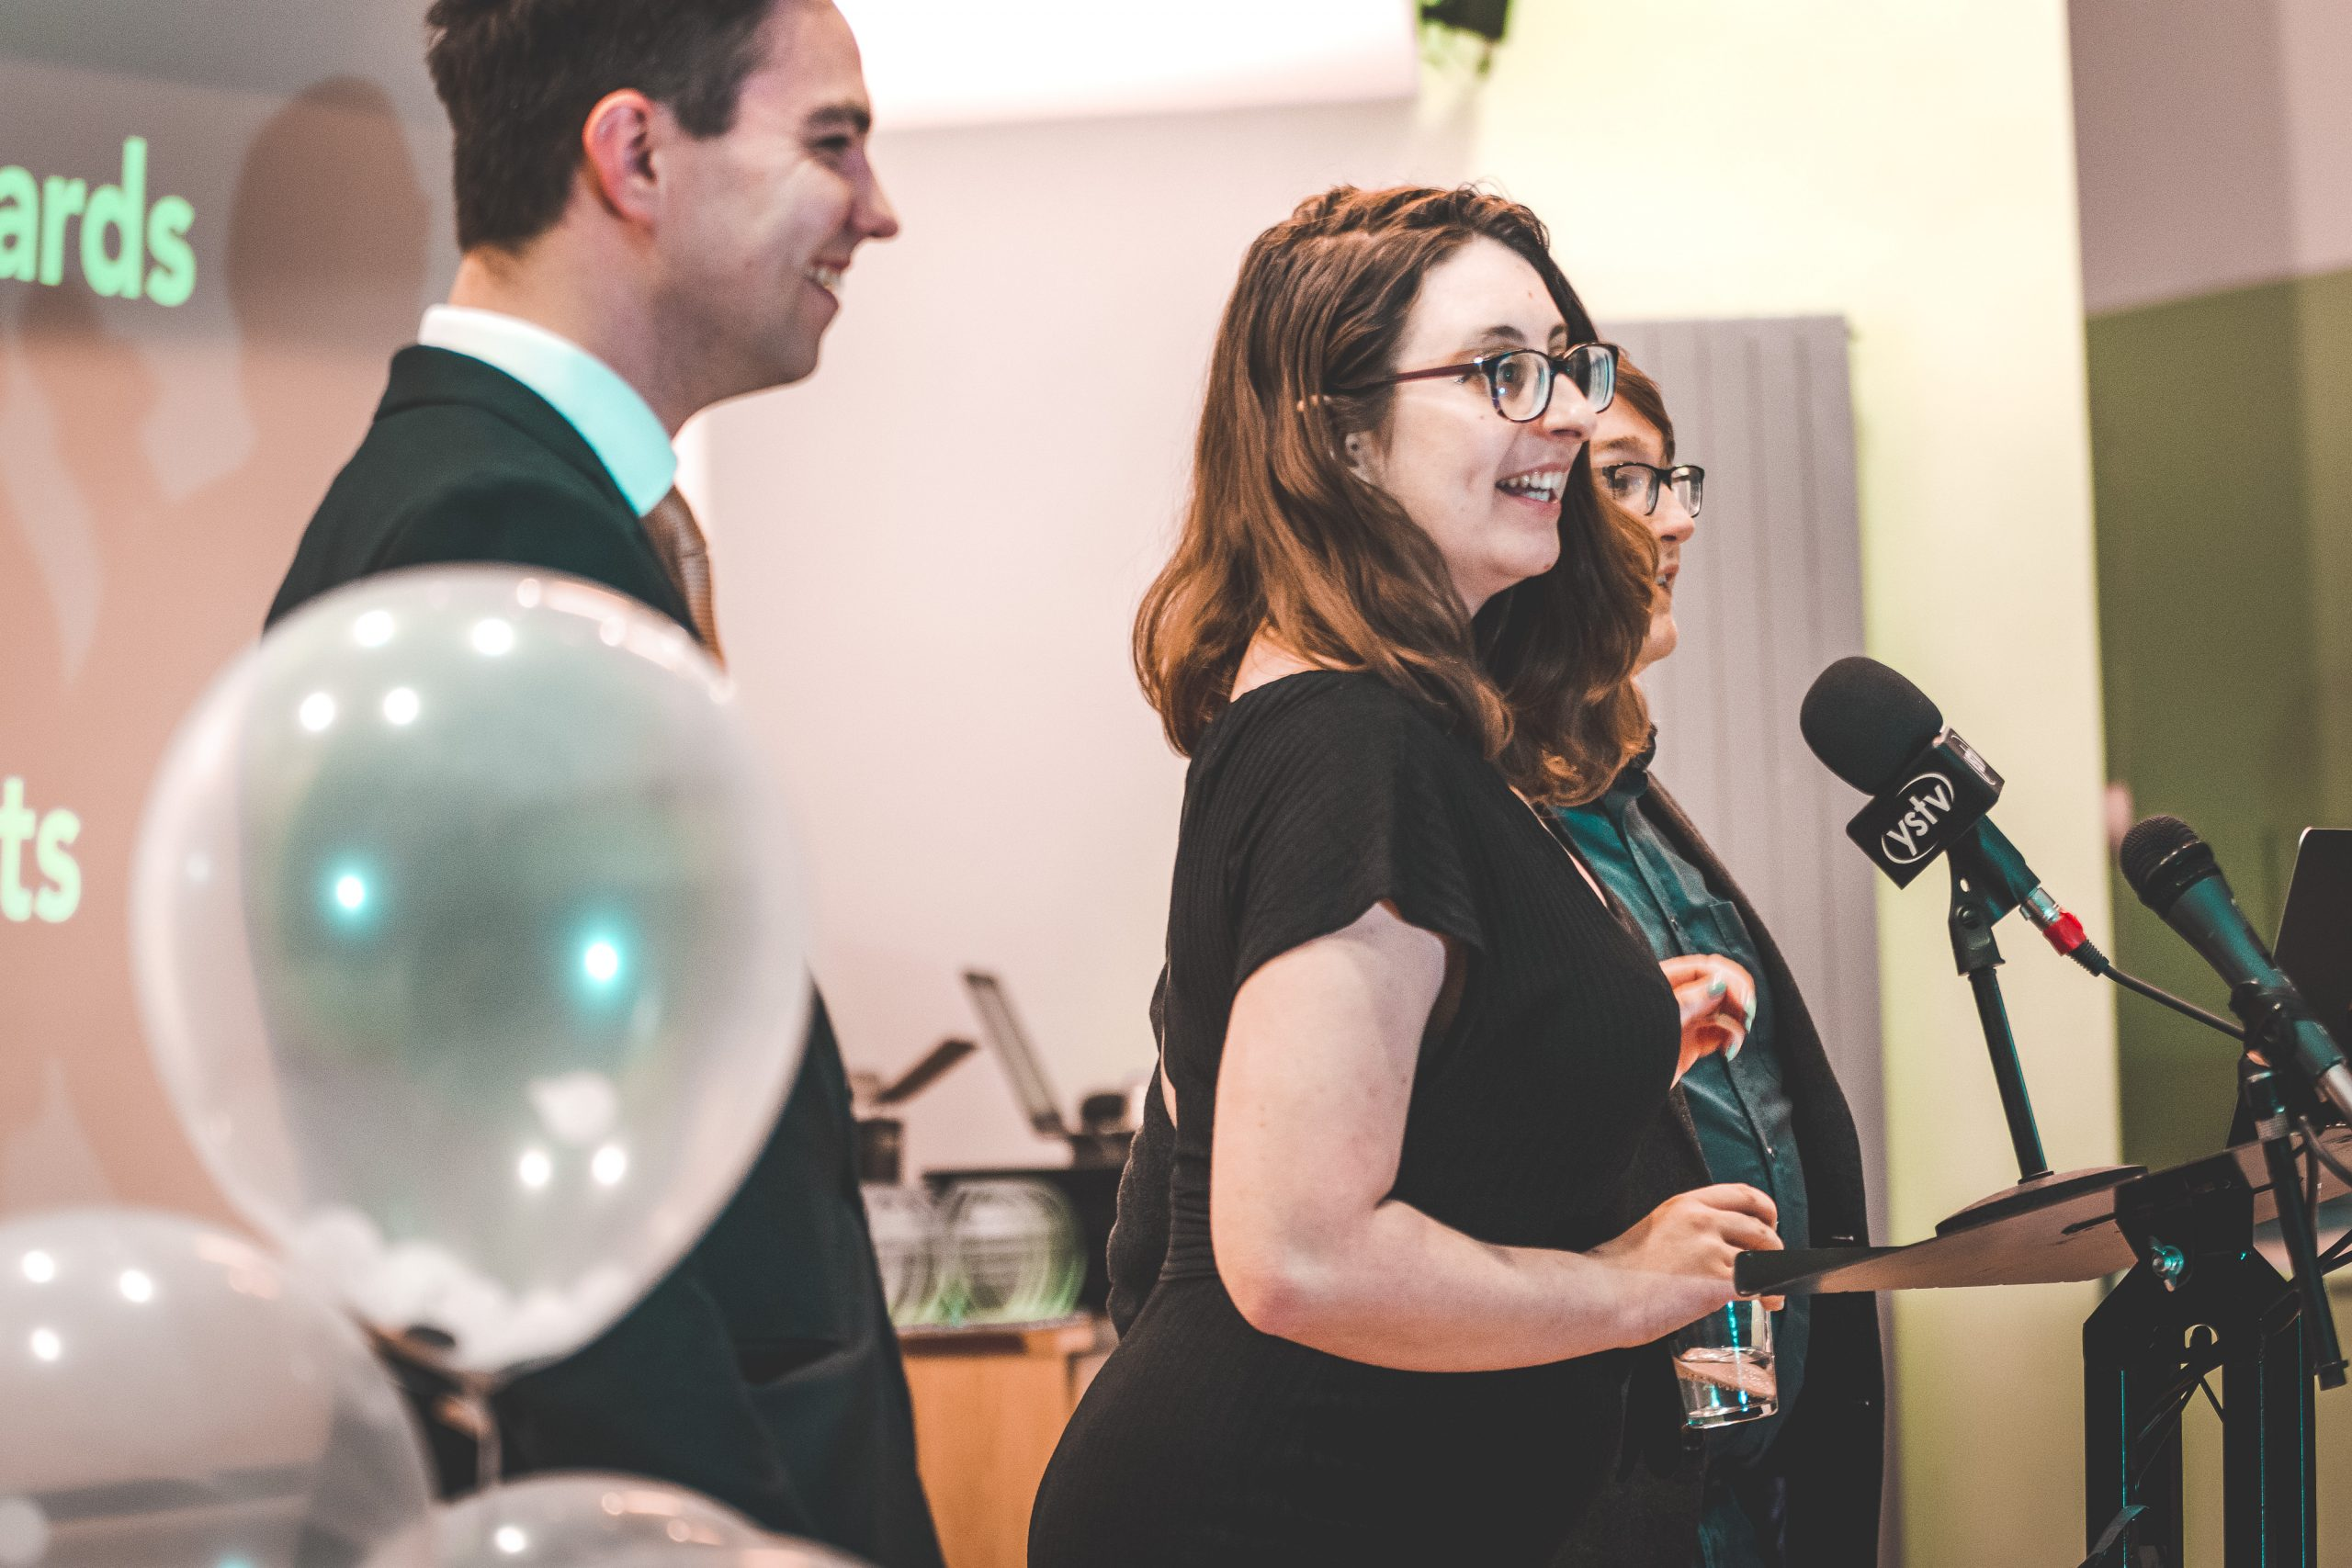 Jem Collins presenting an award at the SPA National Conference in 2019. It's a side angle as she talks into a microphone on a podium. She's dressed in all black and her dark brown hair is down. She's wearing glasses and holding a glass of water. She's smiling but it's a candid shot.